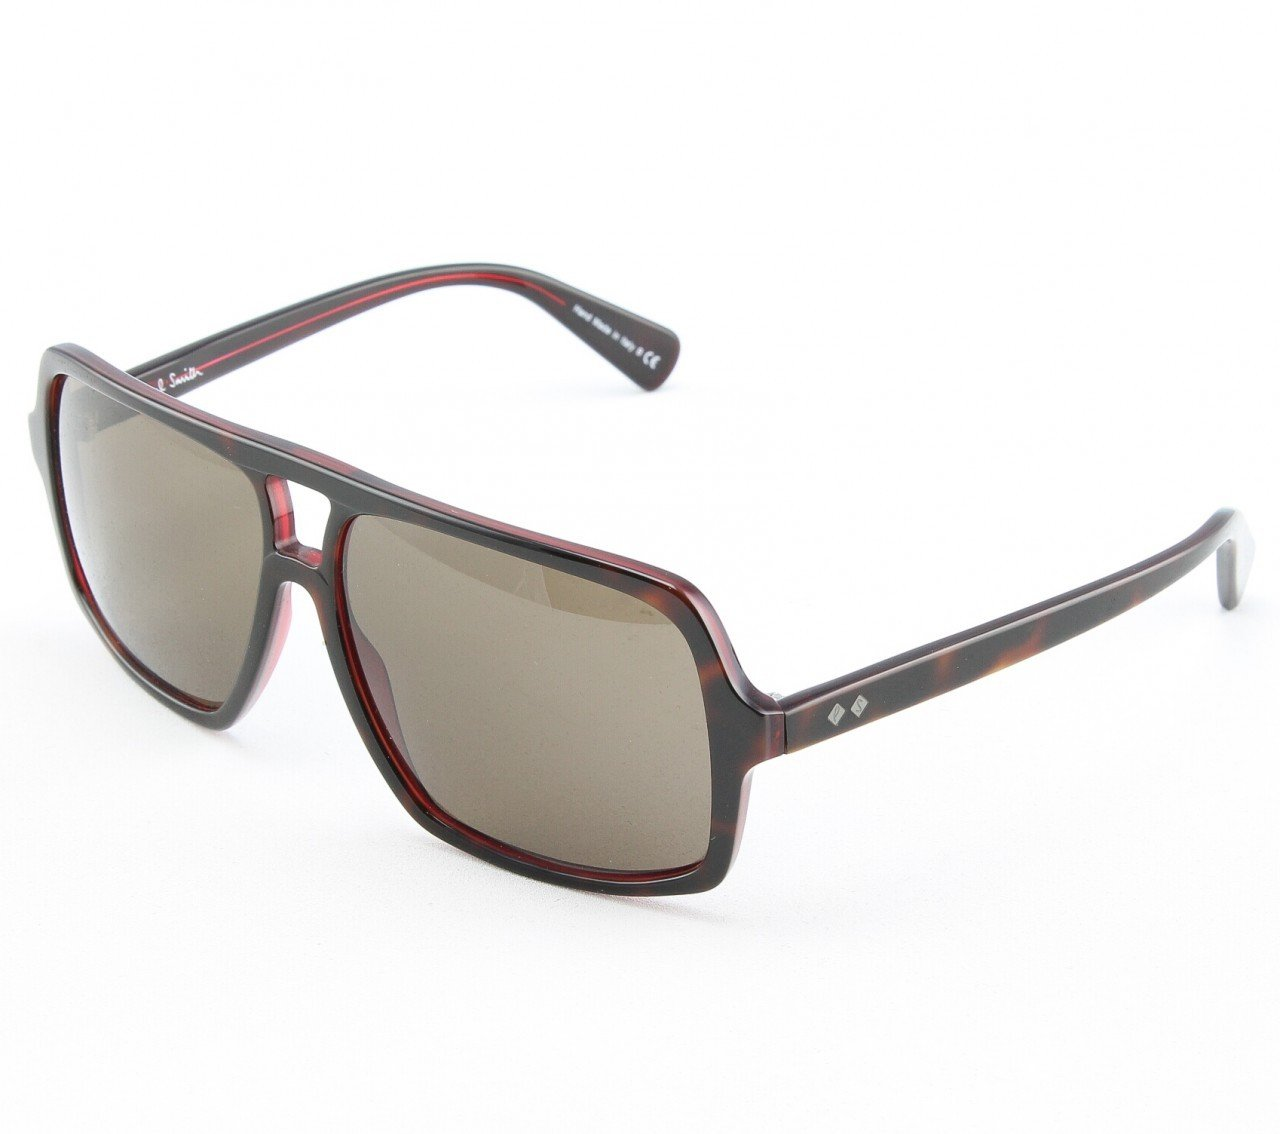 Paul Smith Waller 8082S 1020/73 Sunglasses Brown Tortoise Red with Brown Lenses